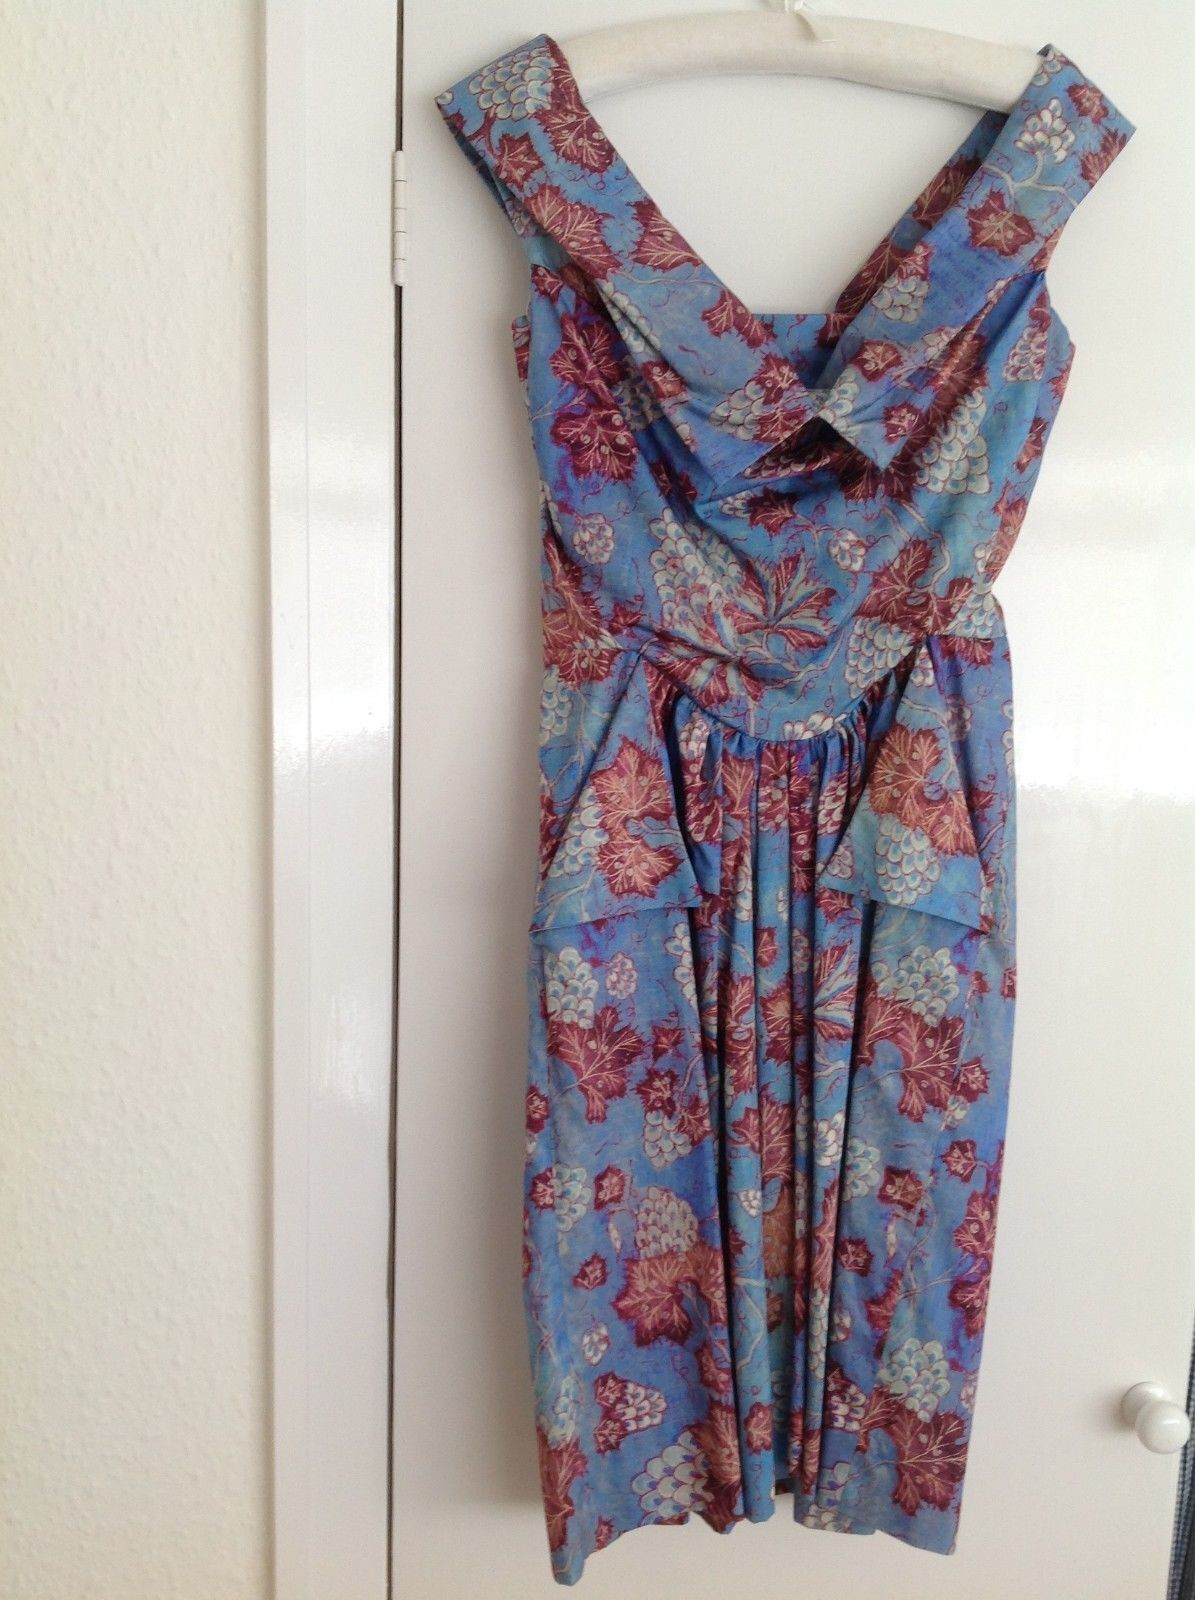 VIVIENNE WESTWOOD ANGLOMANIA dress floral print new with tags size 40 EUR36